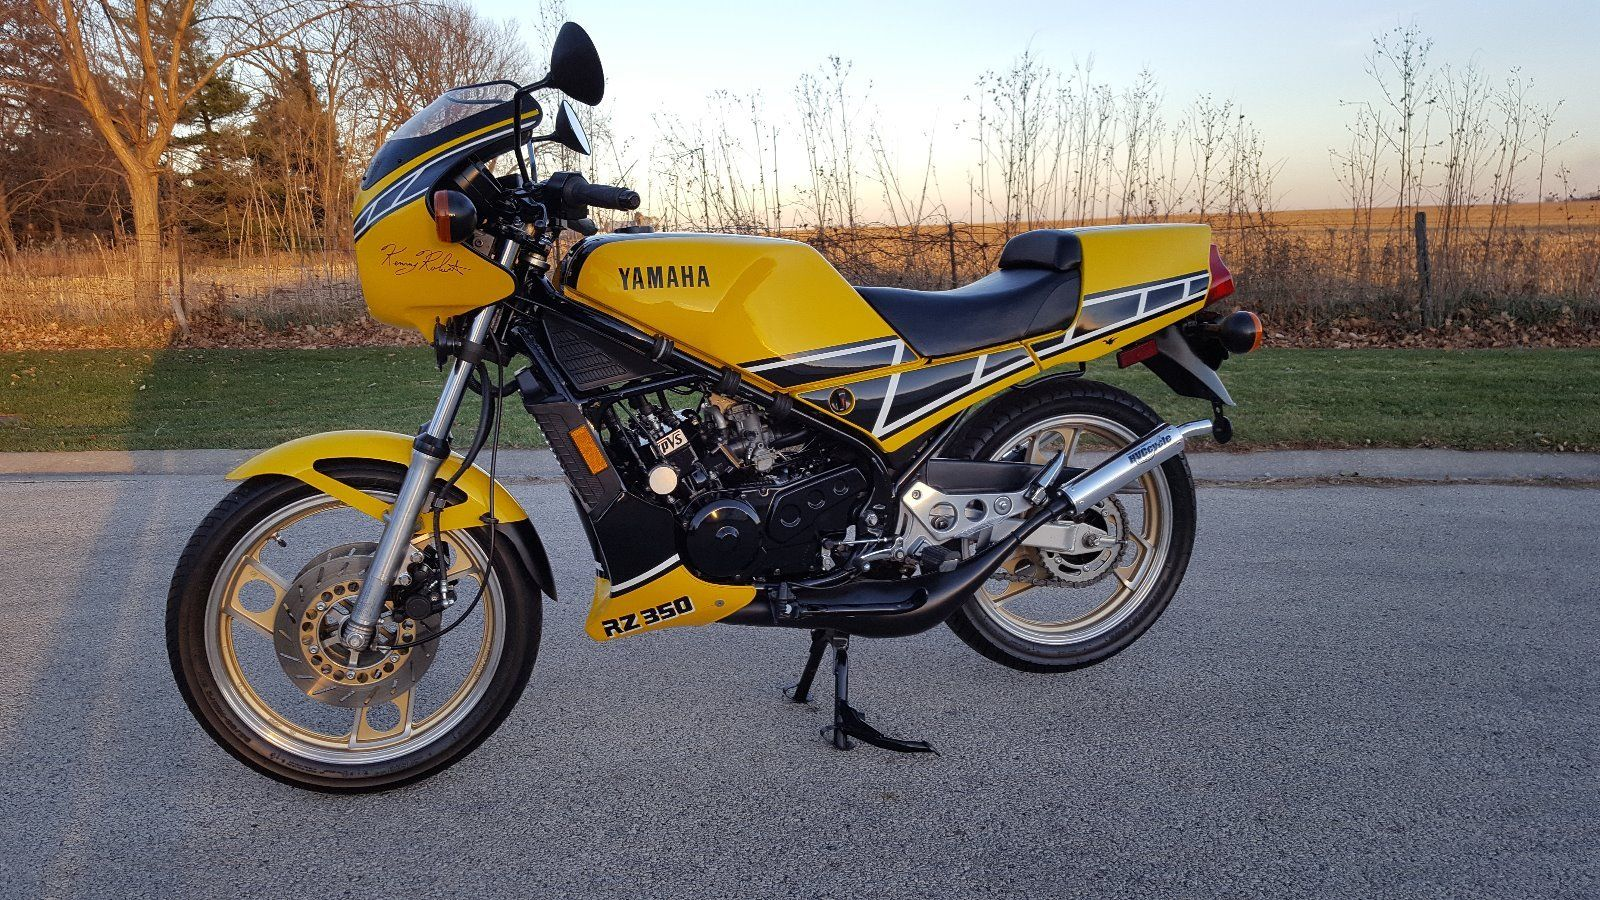 11 out of 10 1984 yamaha rz350 rare sportbikes for sale for Yamaha rz for sale